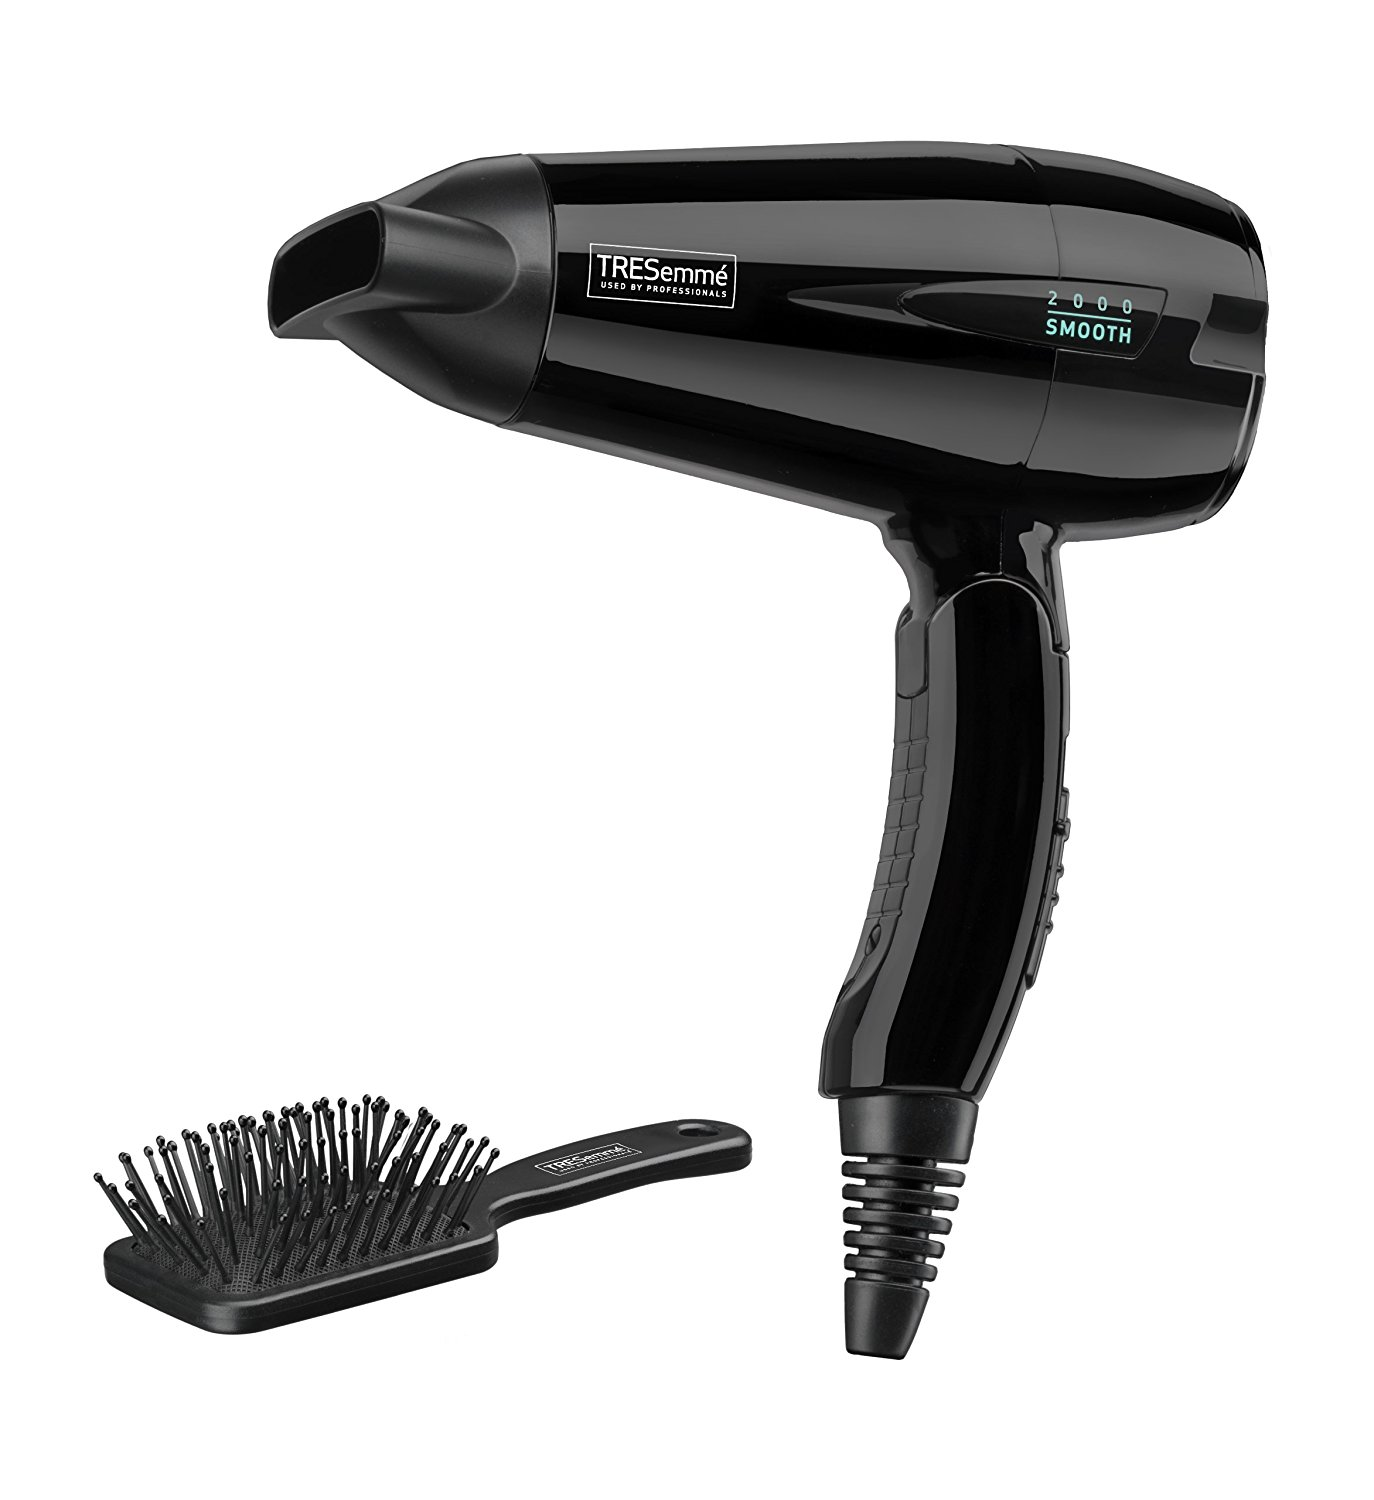 TRESemme Travel 2000 Dryer Review